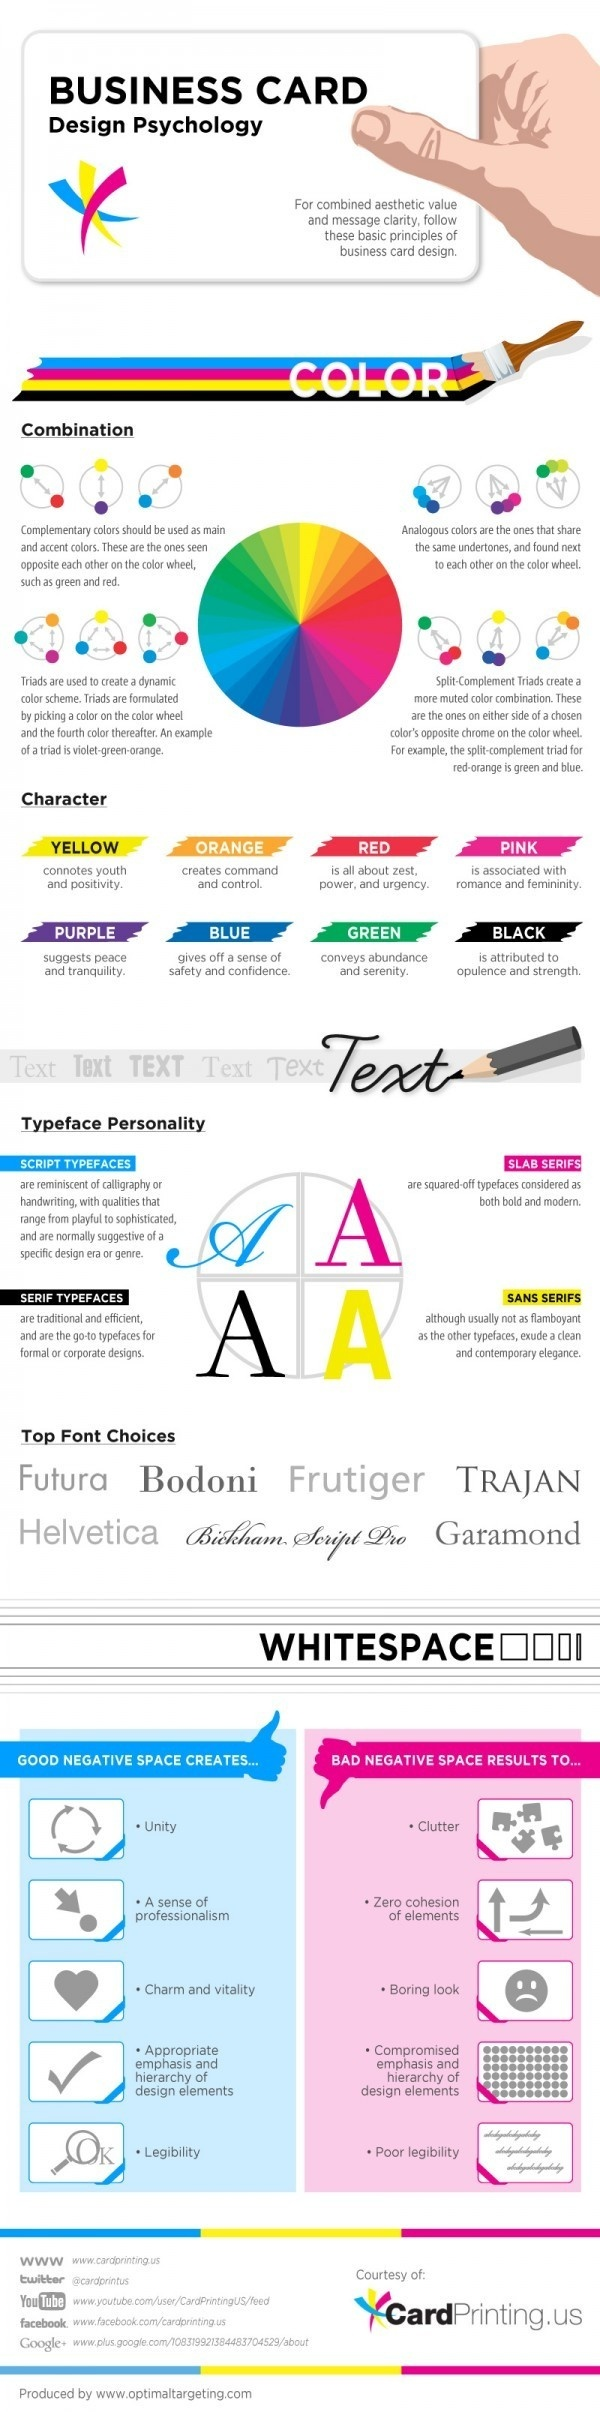 Business Card Infographic Design #useful